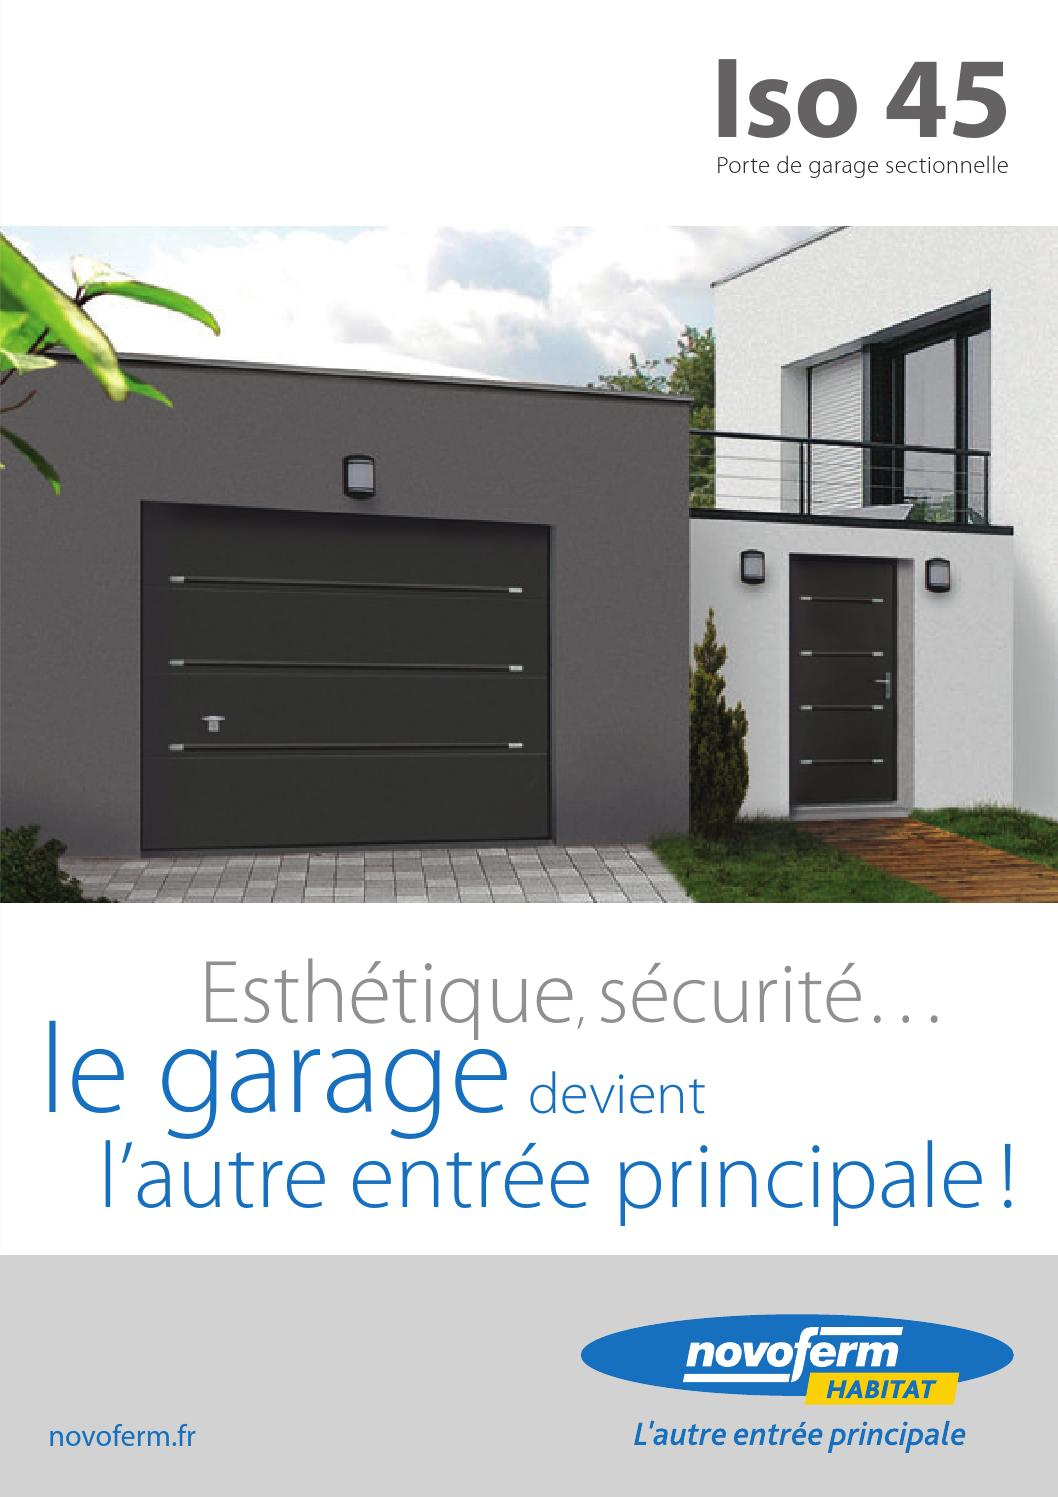 Porte de garage sectionnelle iso 45 by uwl wwp communication issuu - Porte sectionnelle novoferm ...